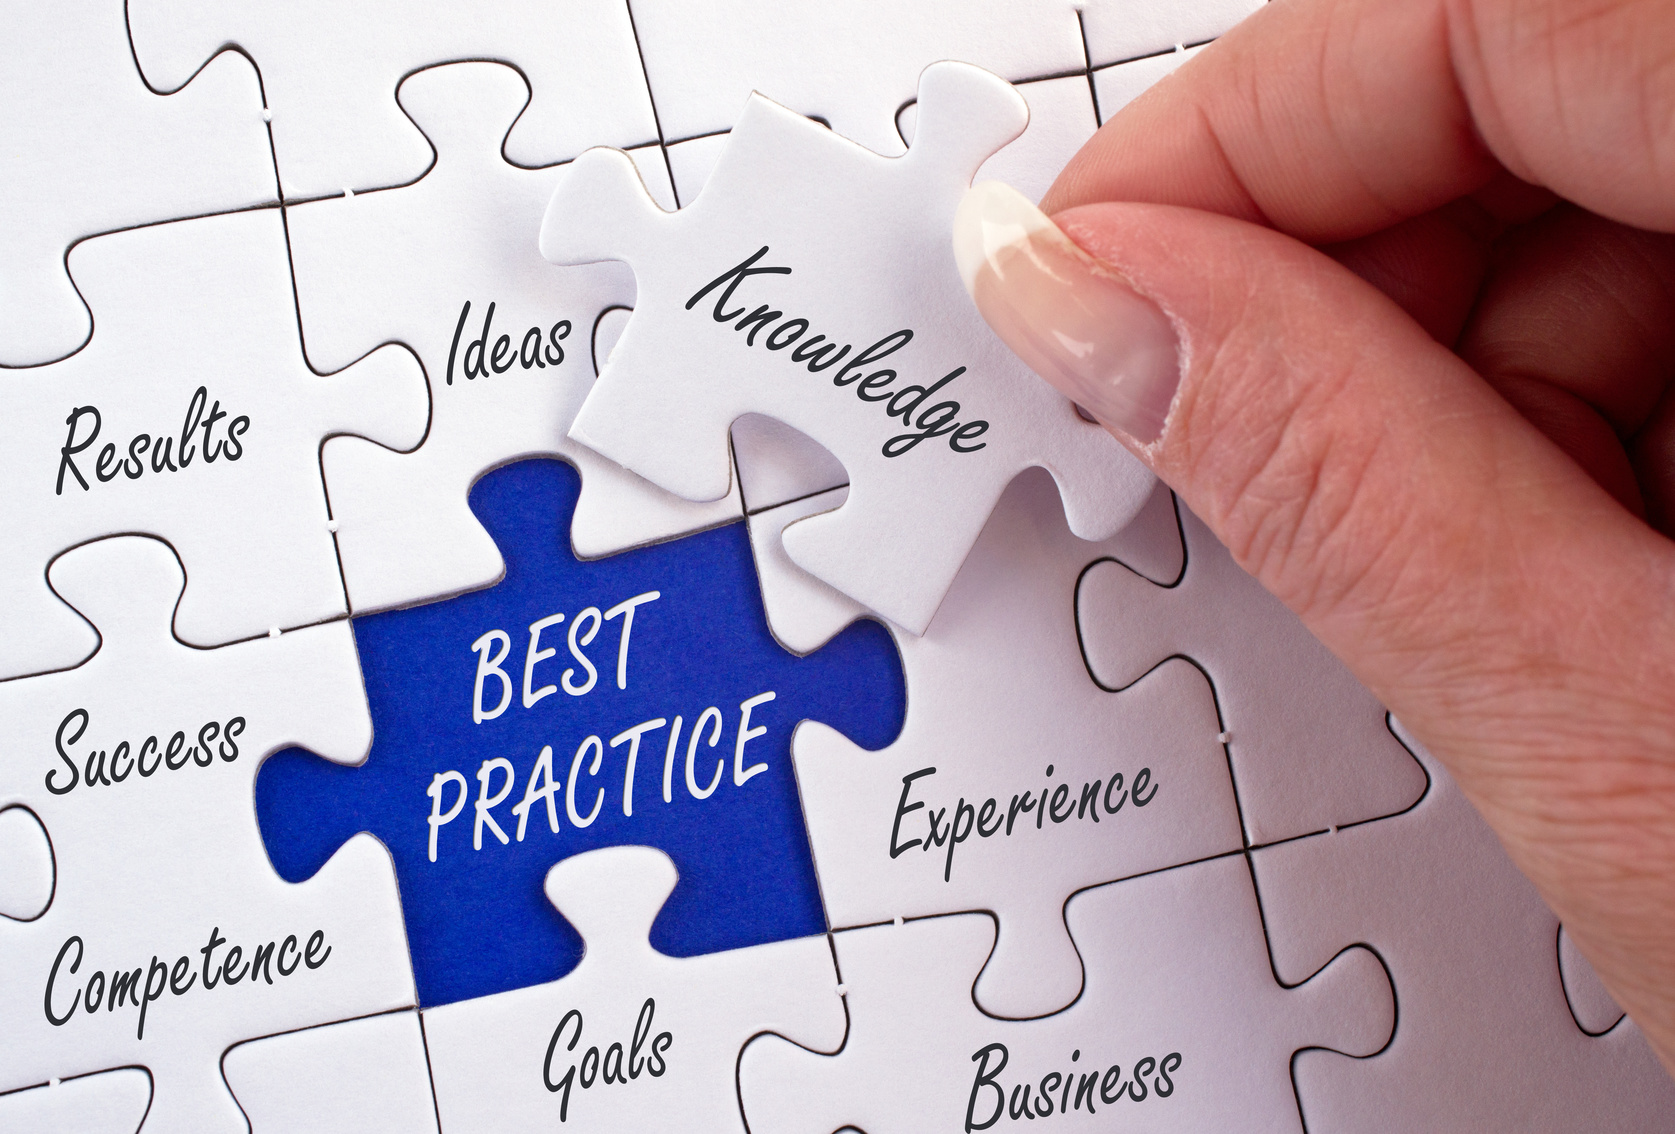 Best Practice Business Concept